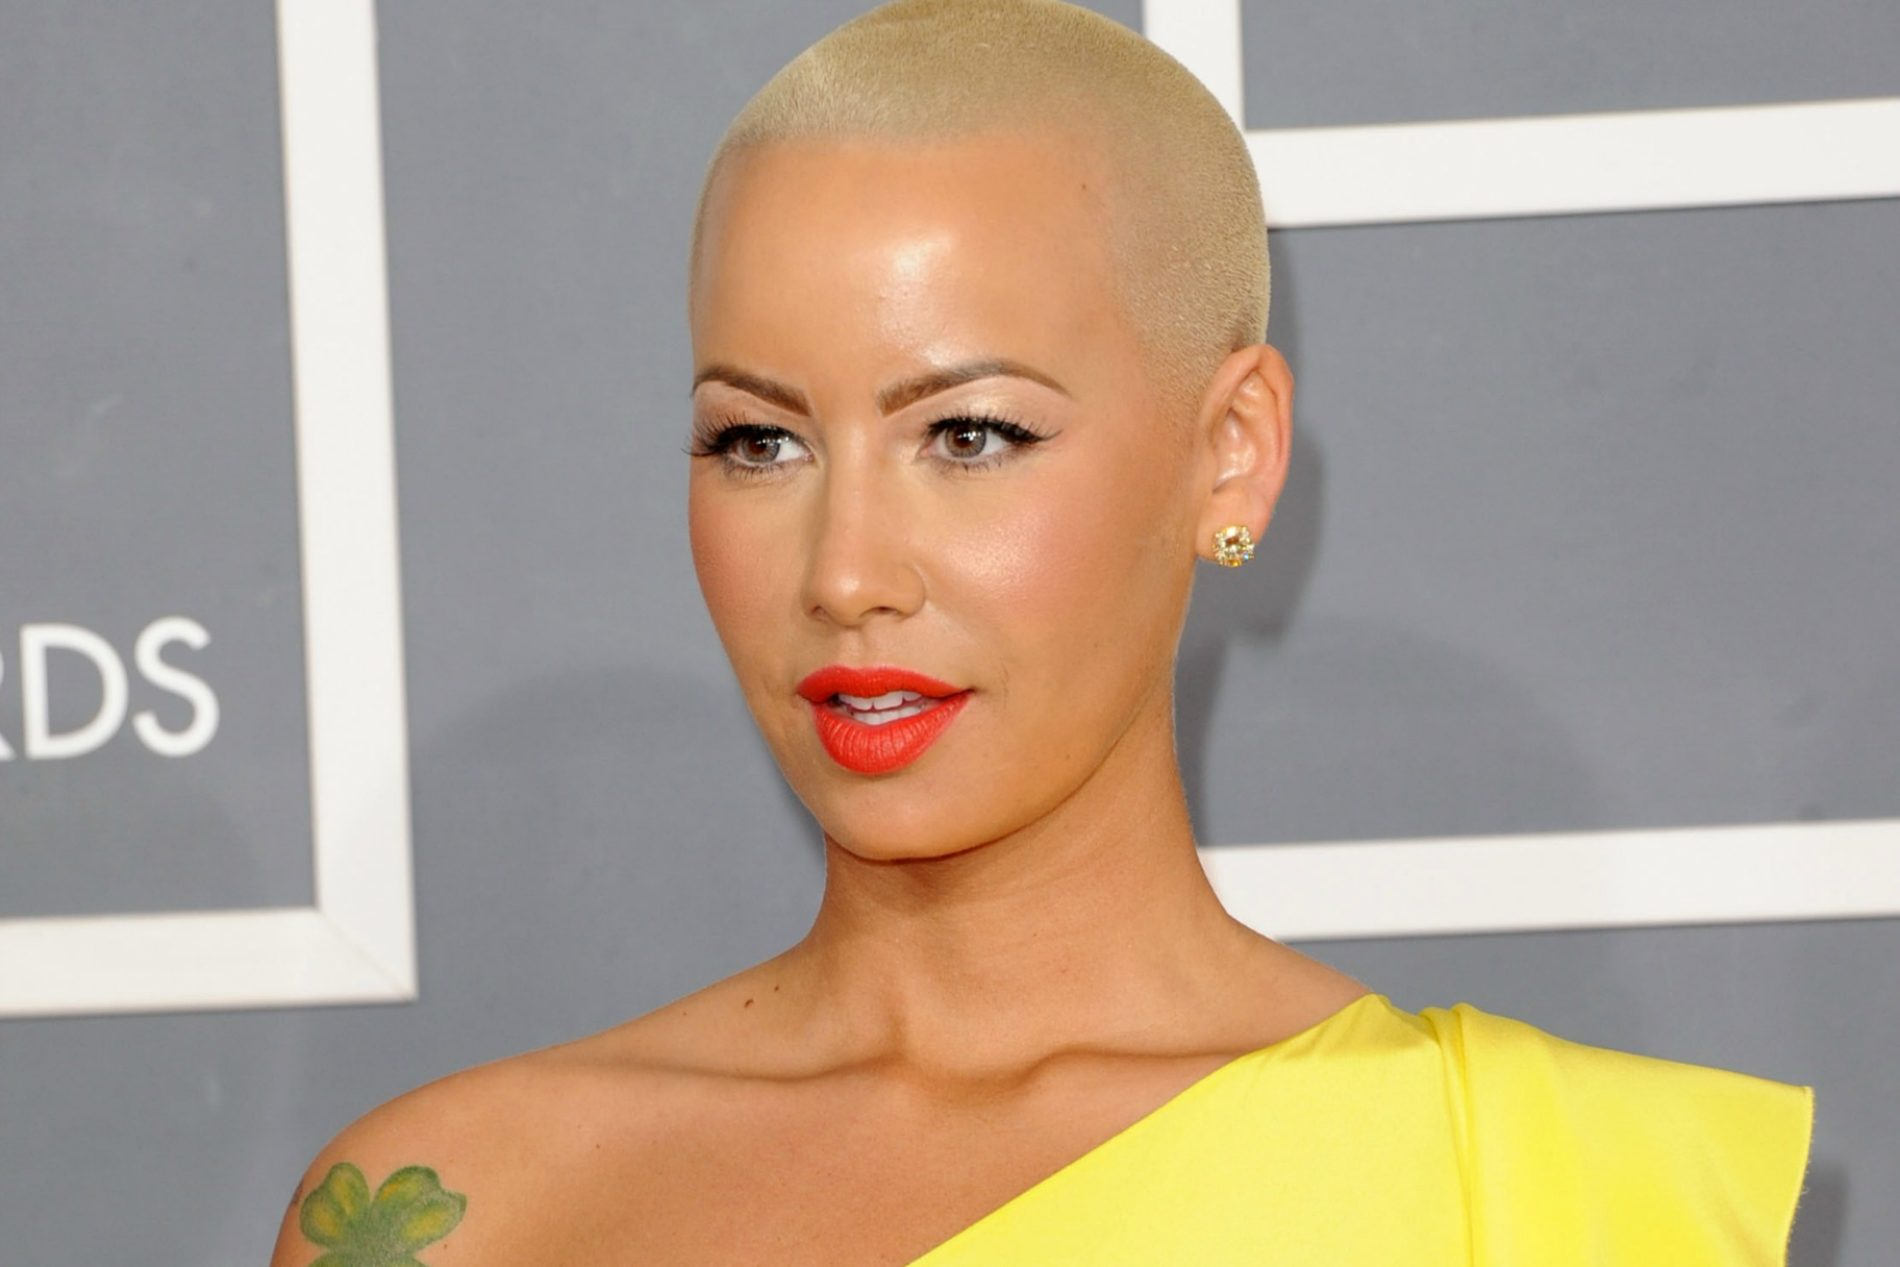 Amber Rose slams trolls who called her 5-year-old son gay for liking Taylor Swift